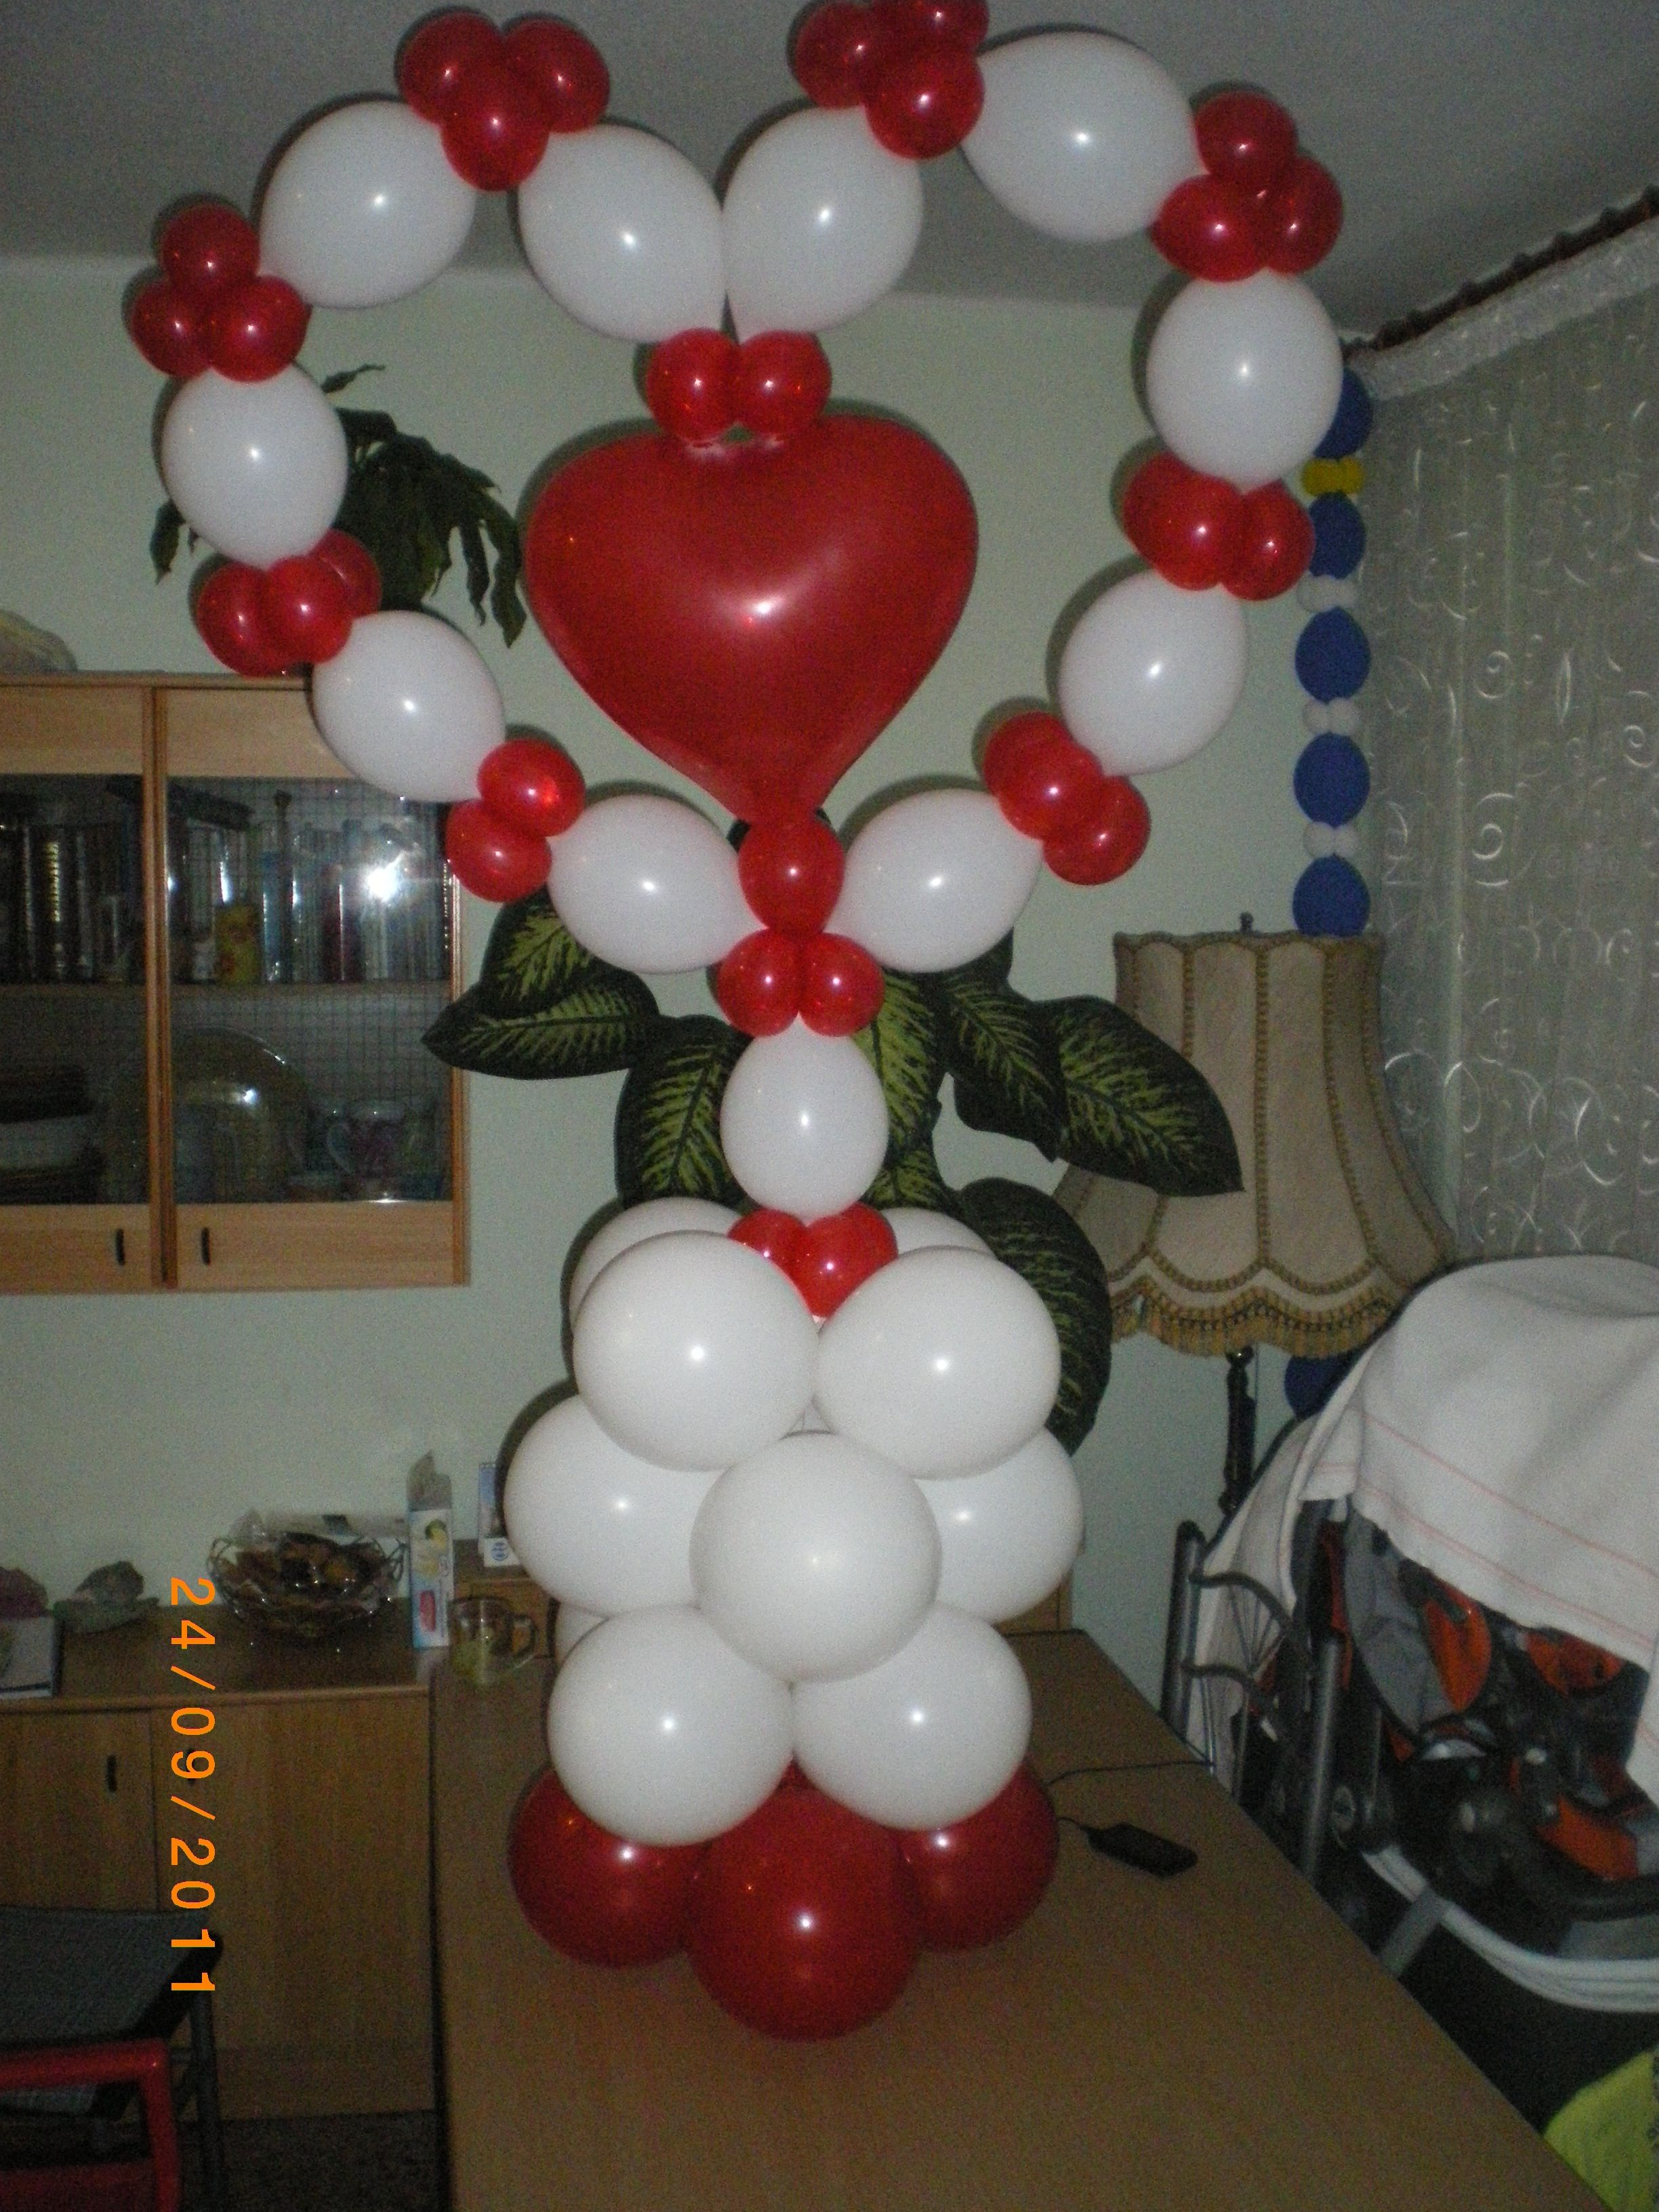 Decorando Con Globos Con Globos Decorando Con Globos Google Search With Con